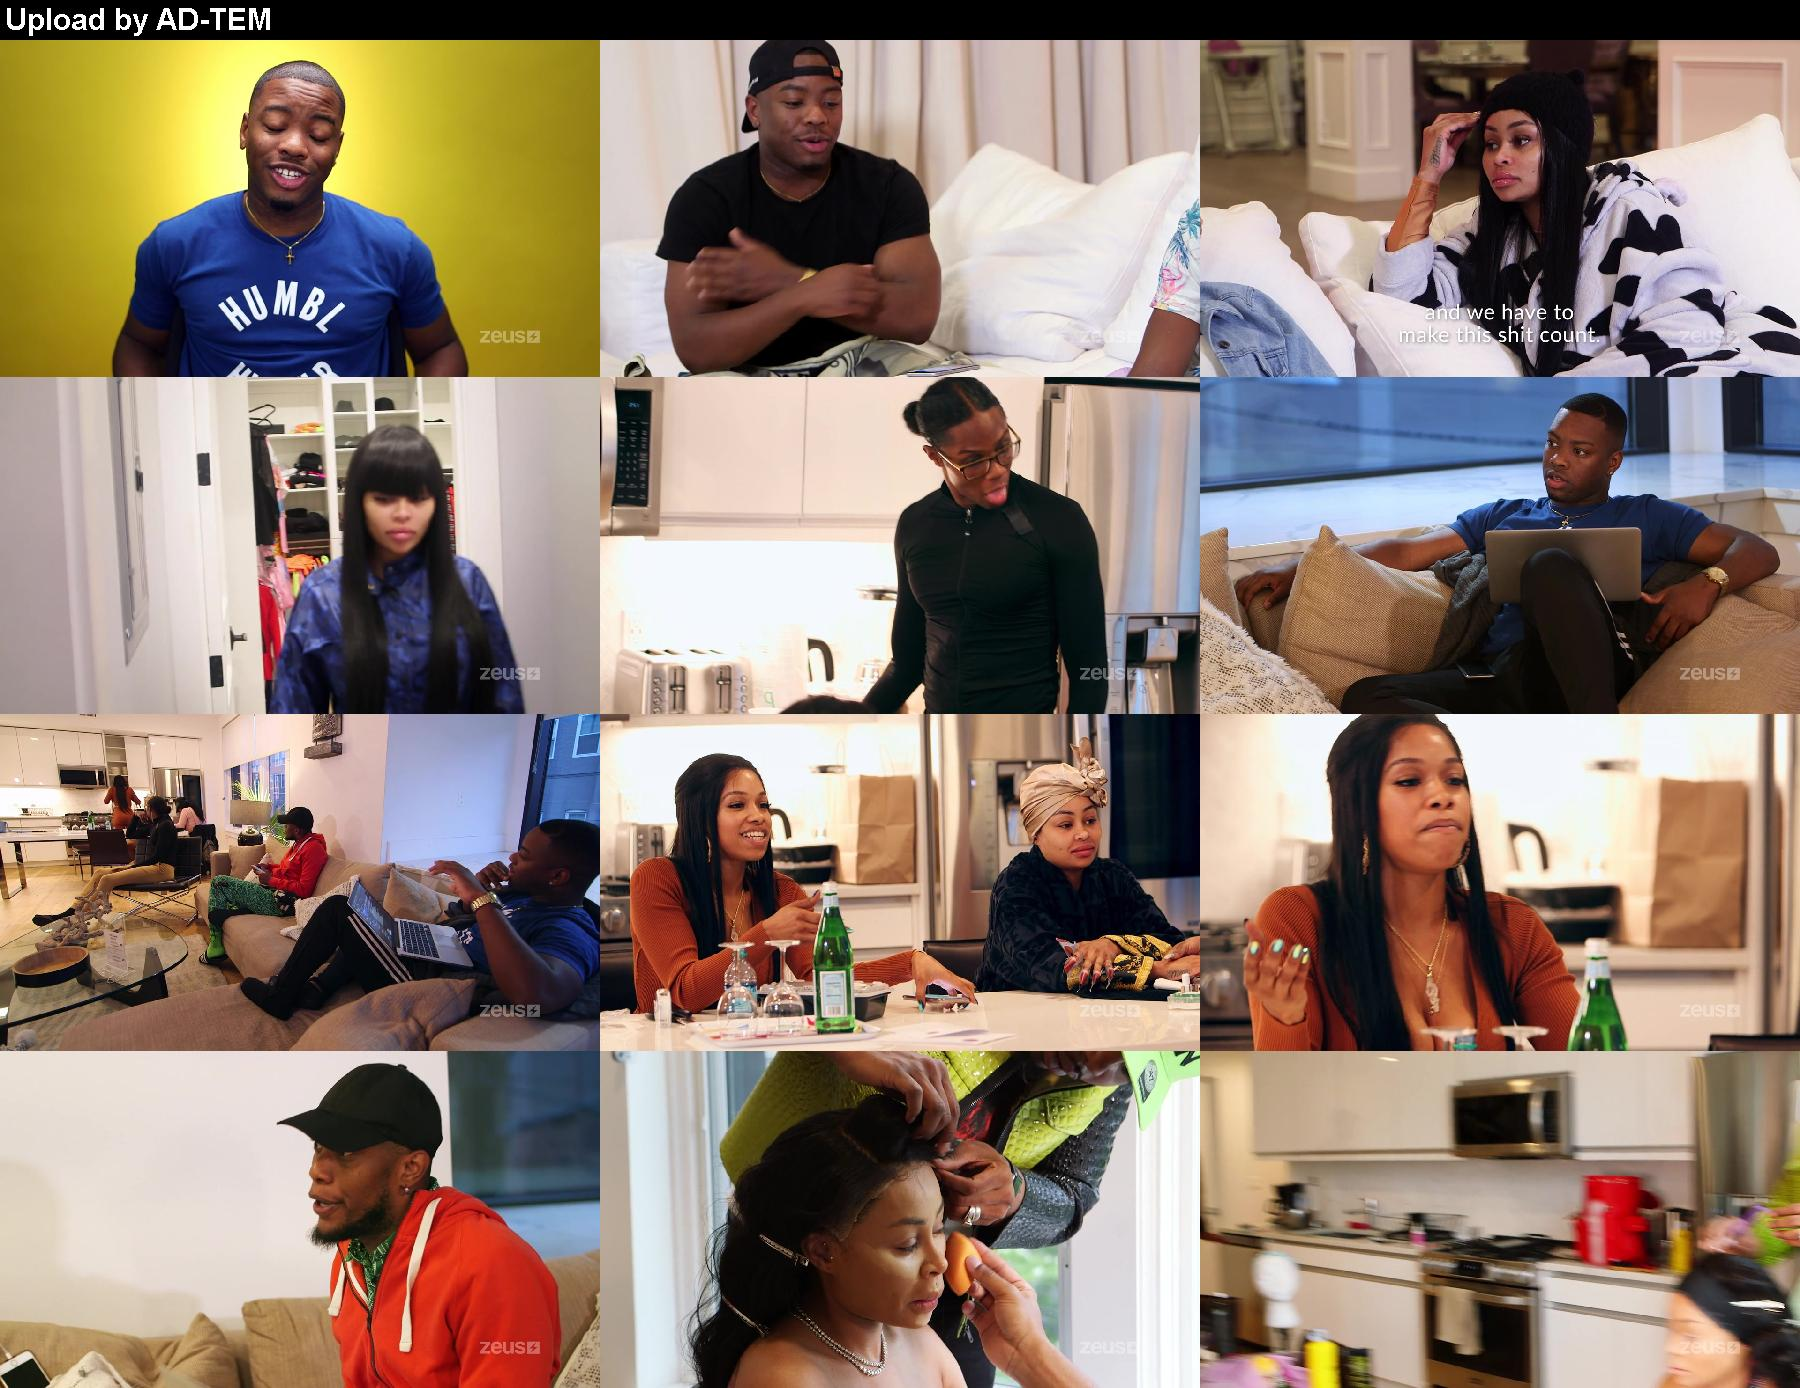 118392952_the-real-blac-chyna-s01e05-if-you-can-make-it-there-720p-web-x264-crimson.jpg